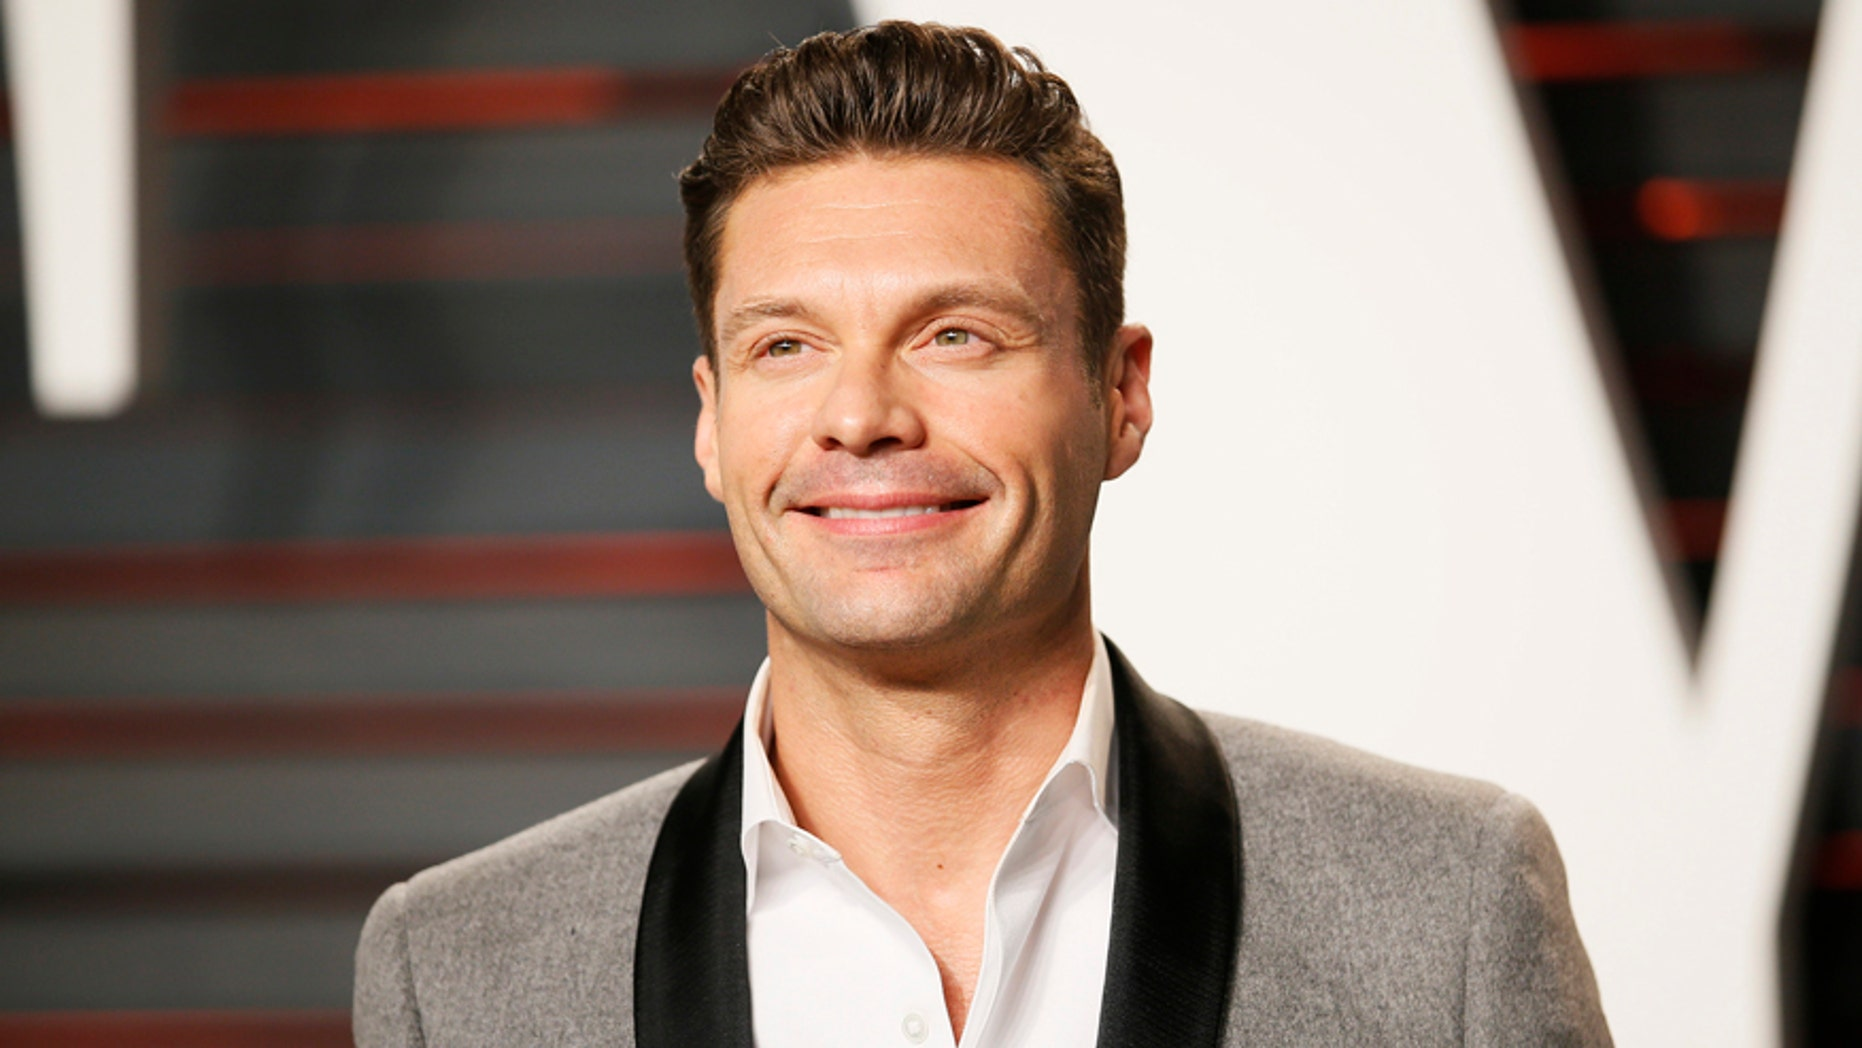 yan Seacrest arrives at the Vanity Fair Oscar Party in Beverly Hills (Reuters)